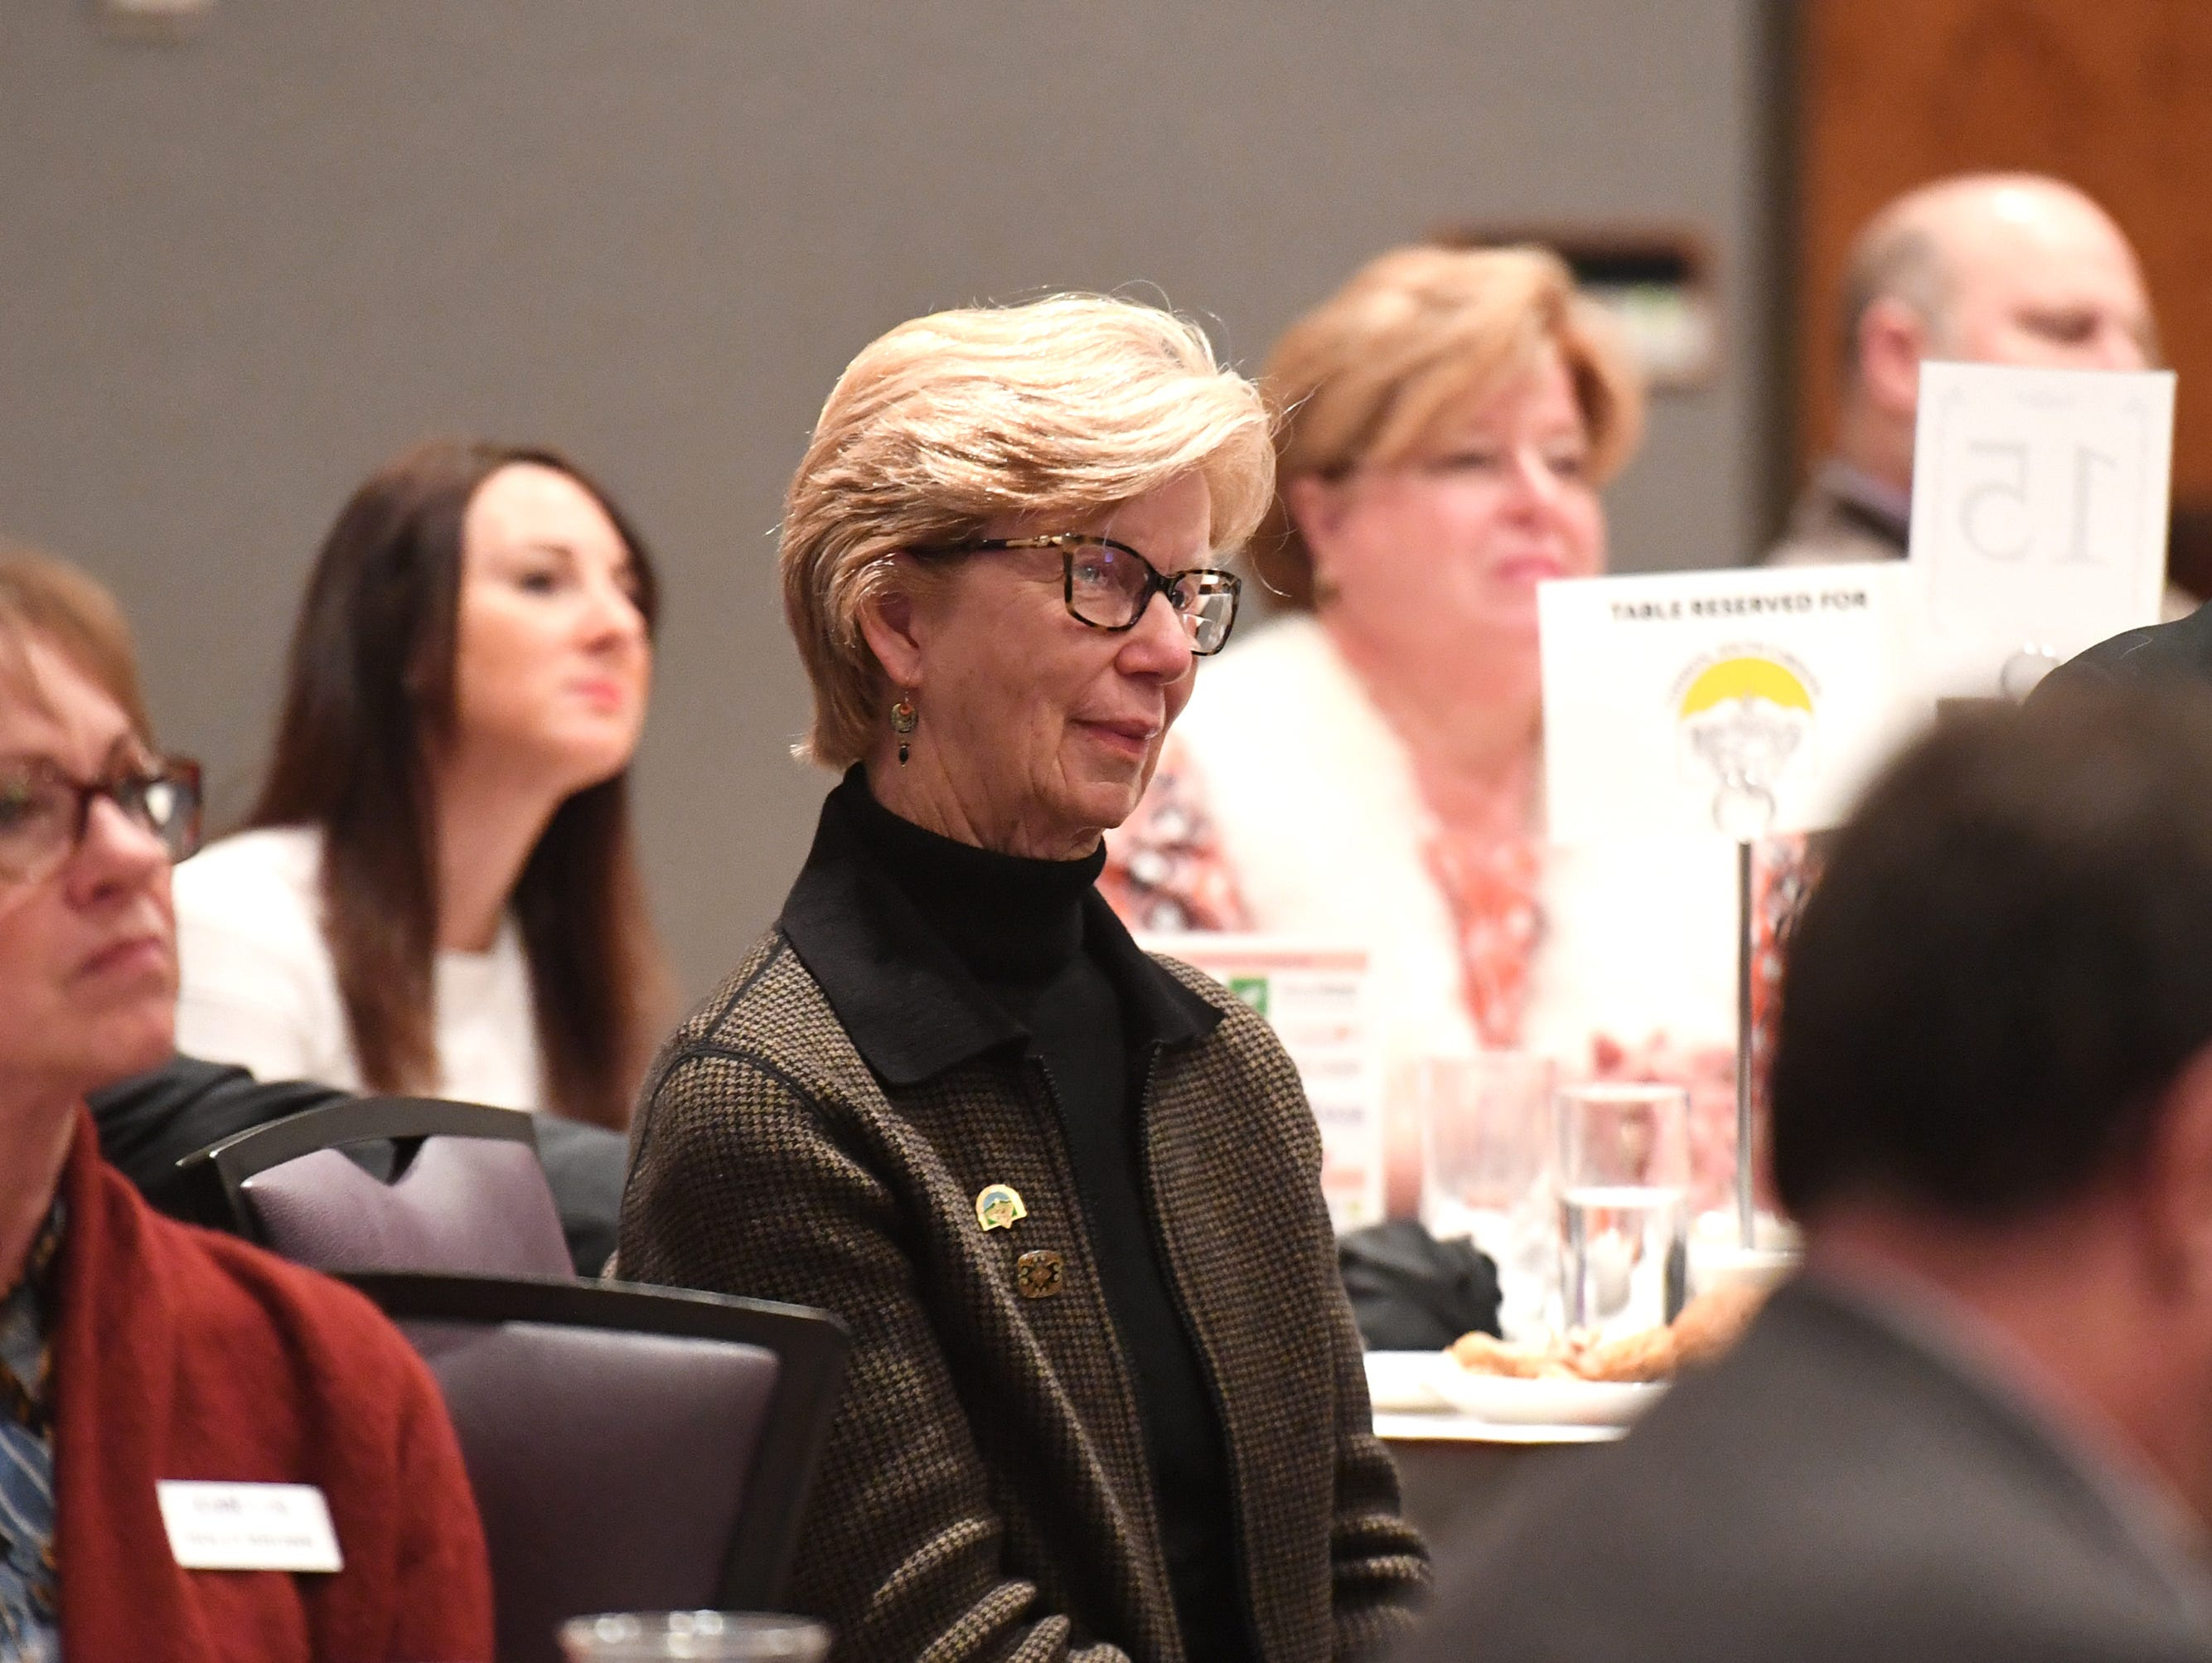 Crossie Cox, a city council member for the City of Clemson, attends the State of Clemson event held at the Madren Center Tuesday, Feb. 19, 2019.